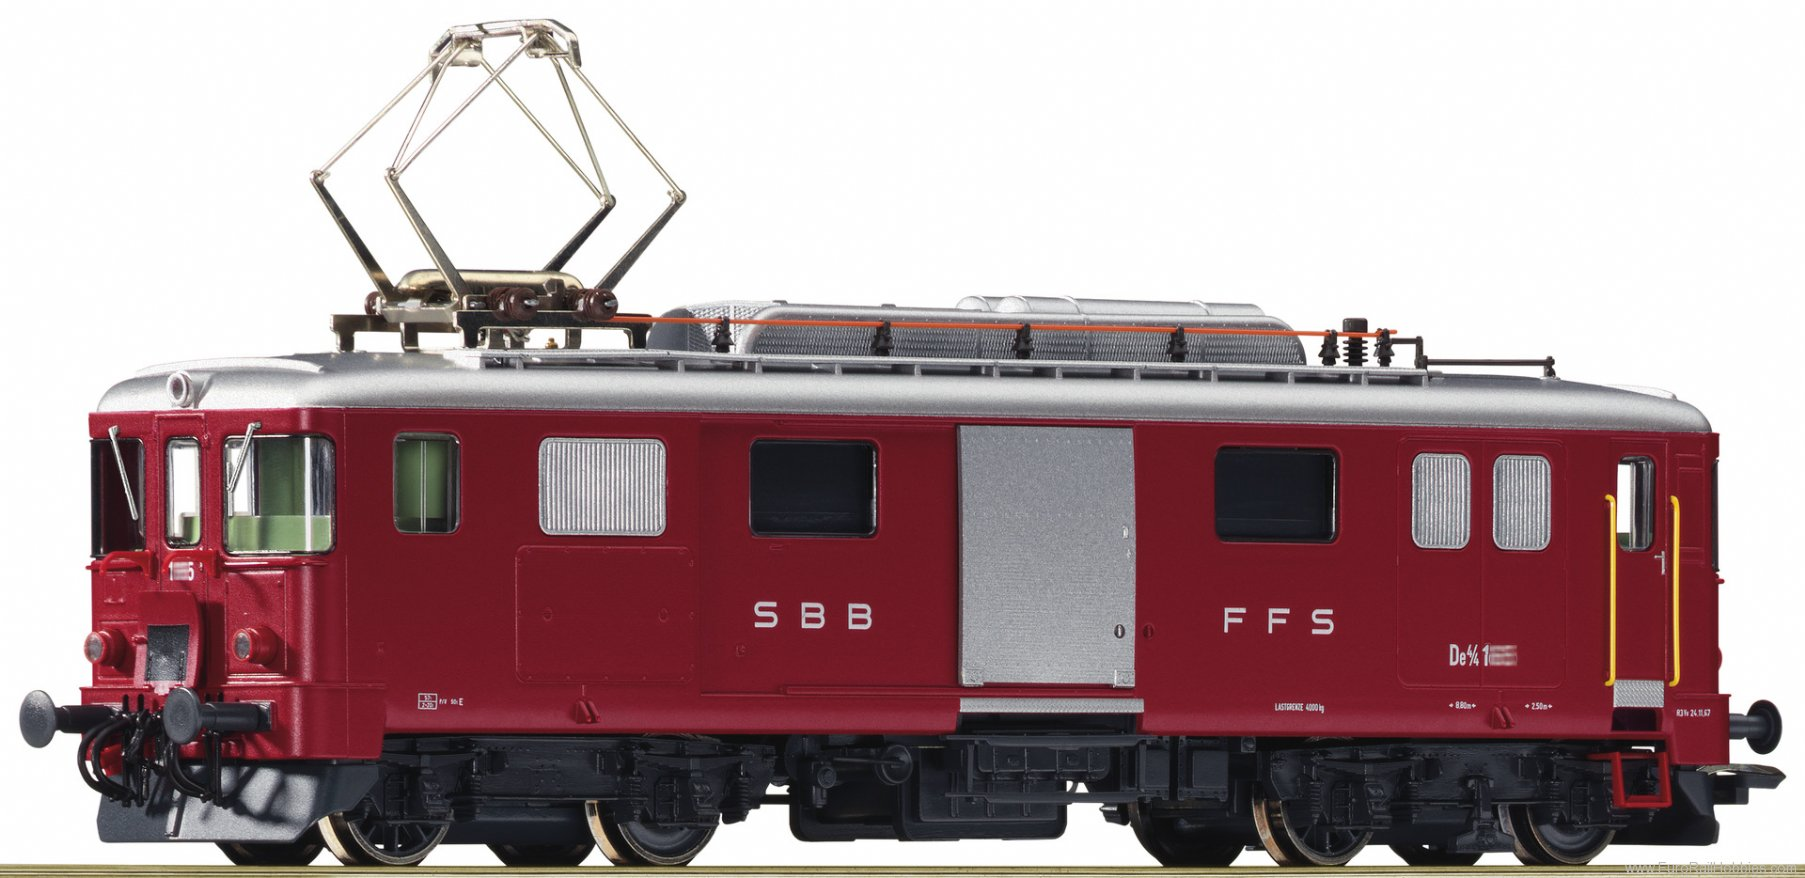 Roco 72656 Electric baggage railcar De4/4, SBB